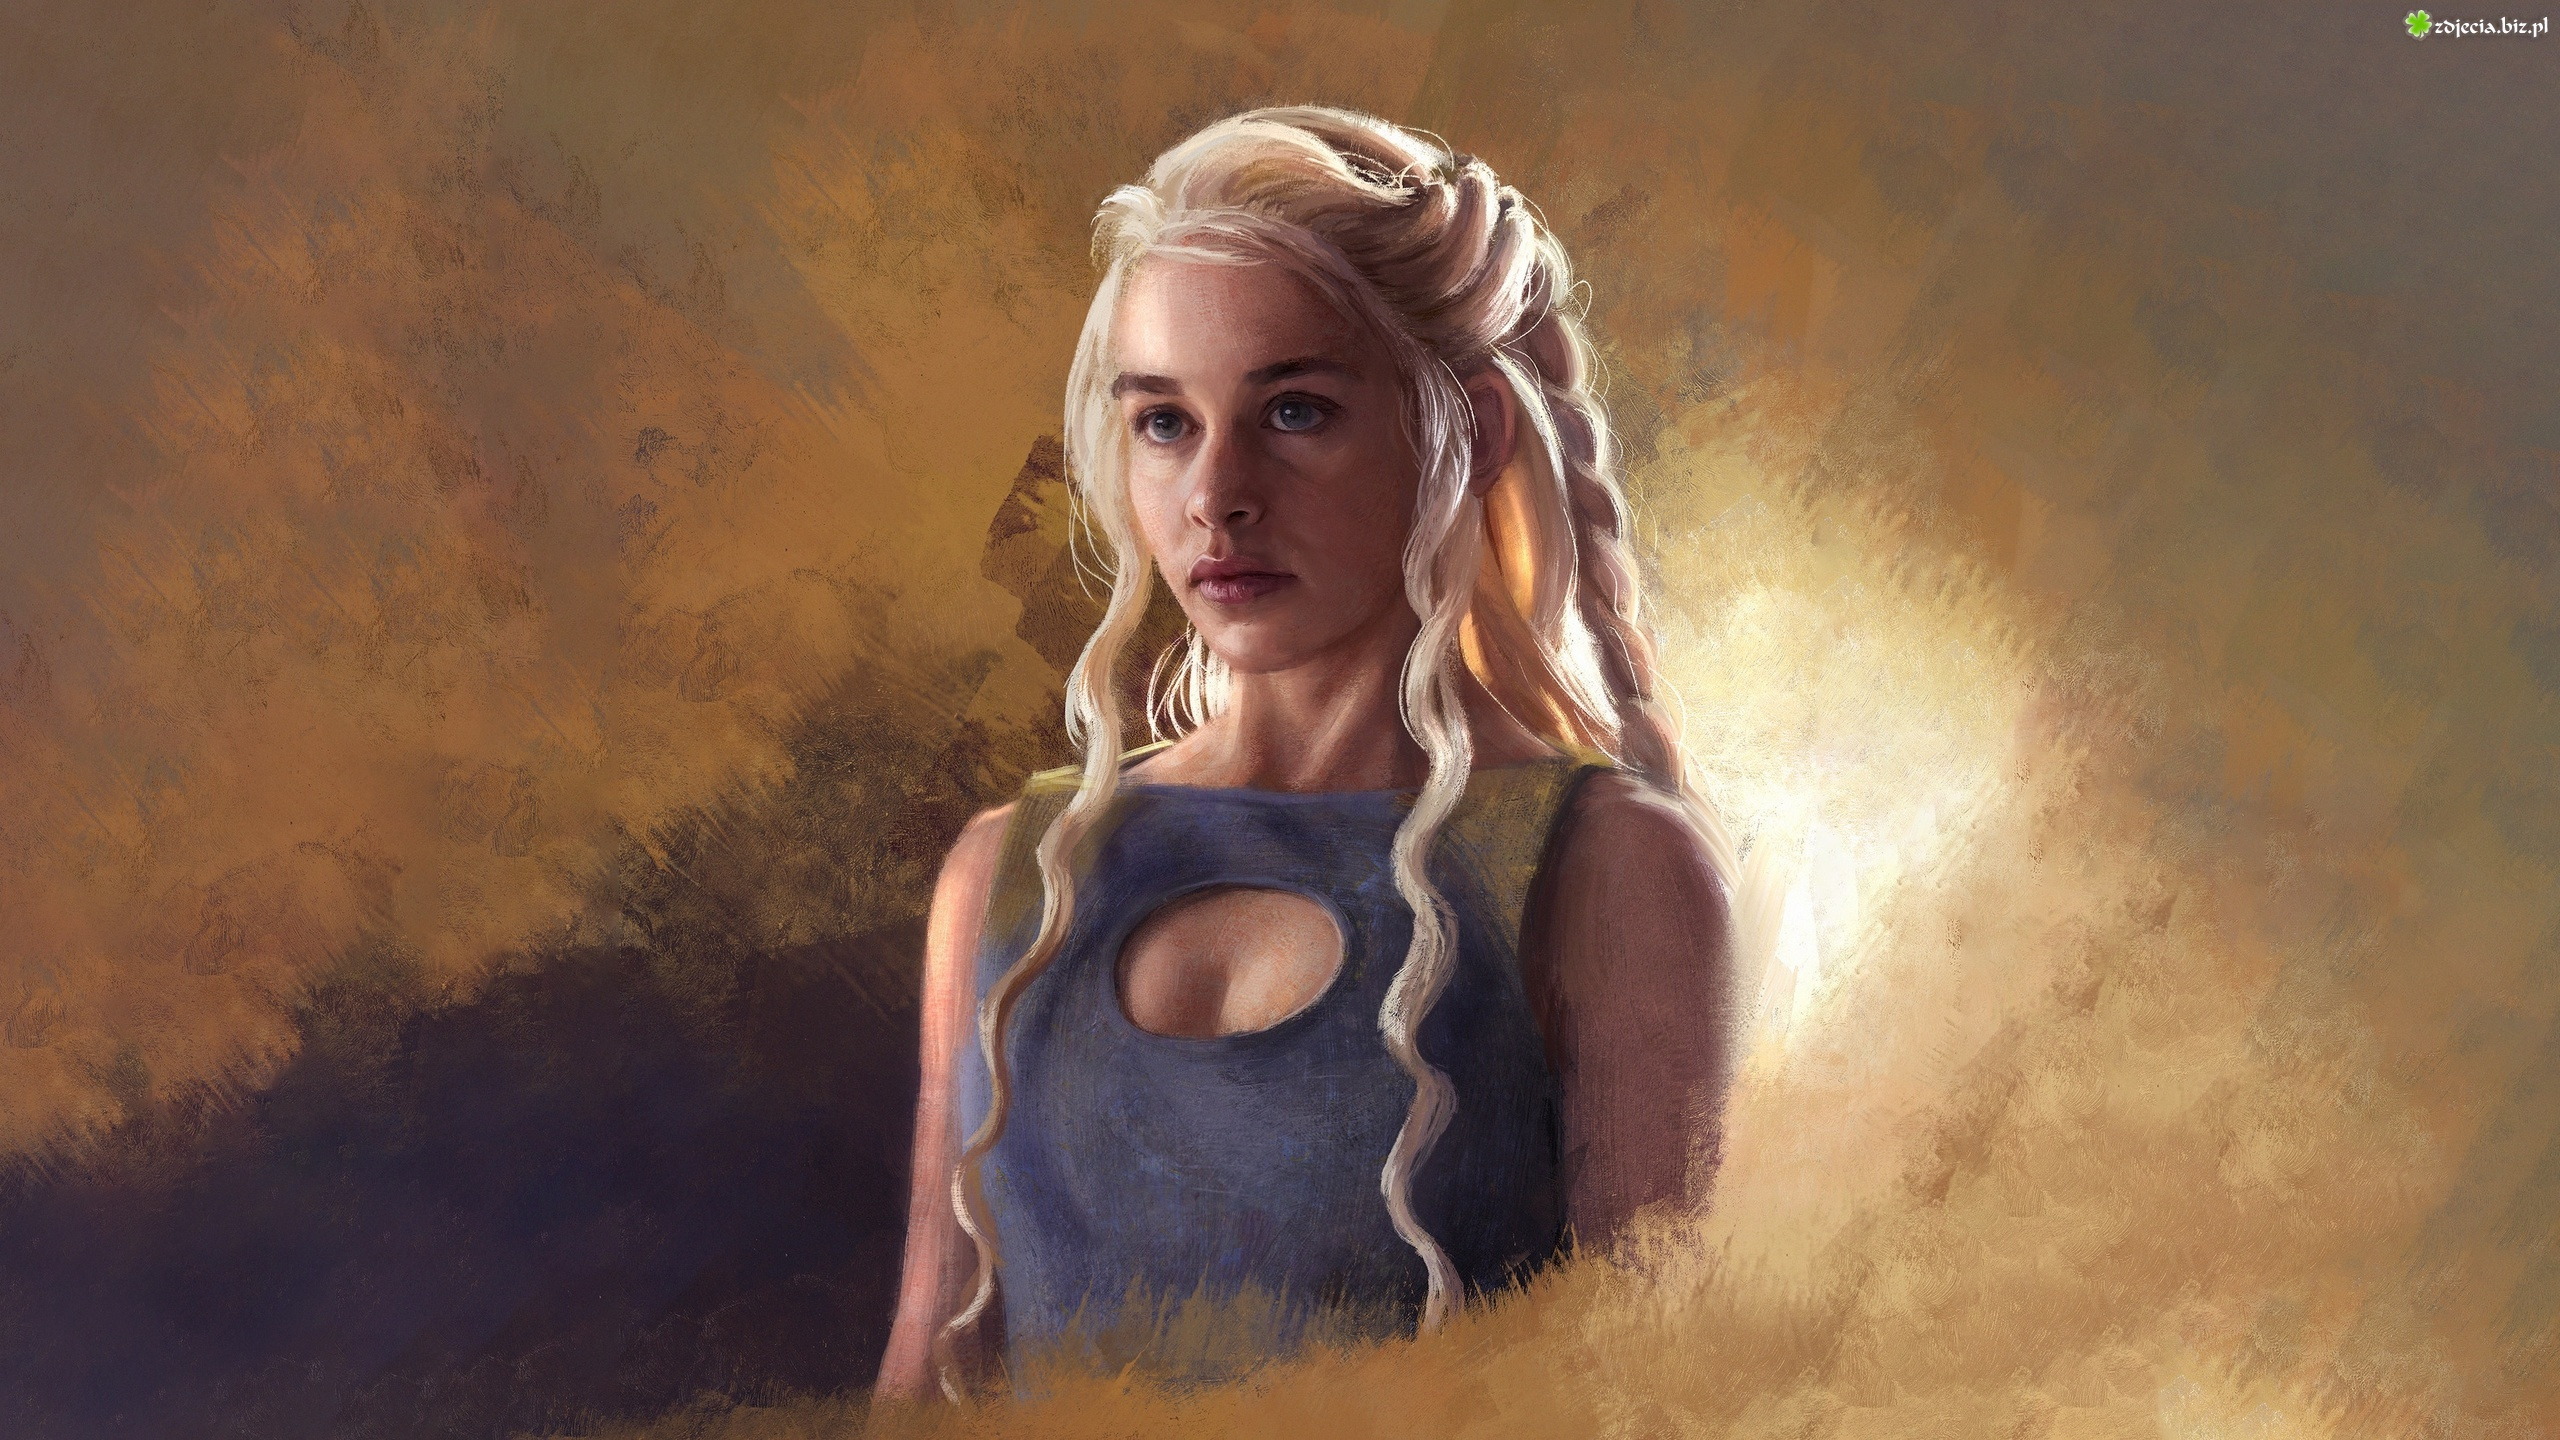 Serial, Gra o Tron, Game of Thrones, Daenerys Targaryen, Aktorka, Emilia Clarke